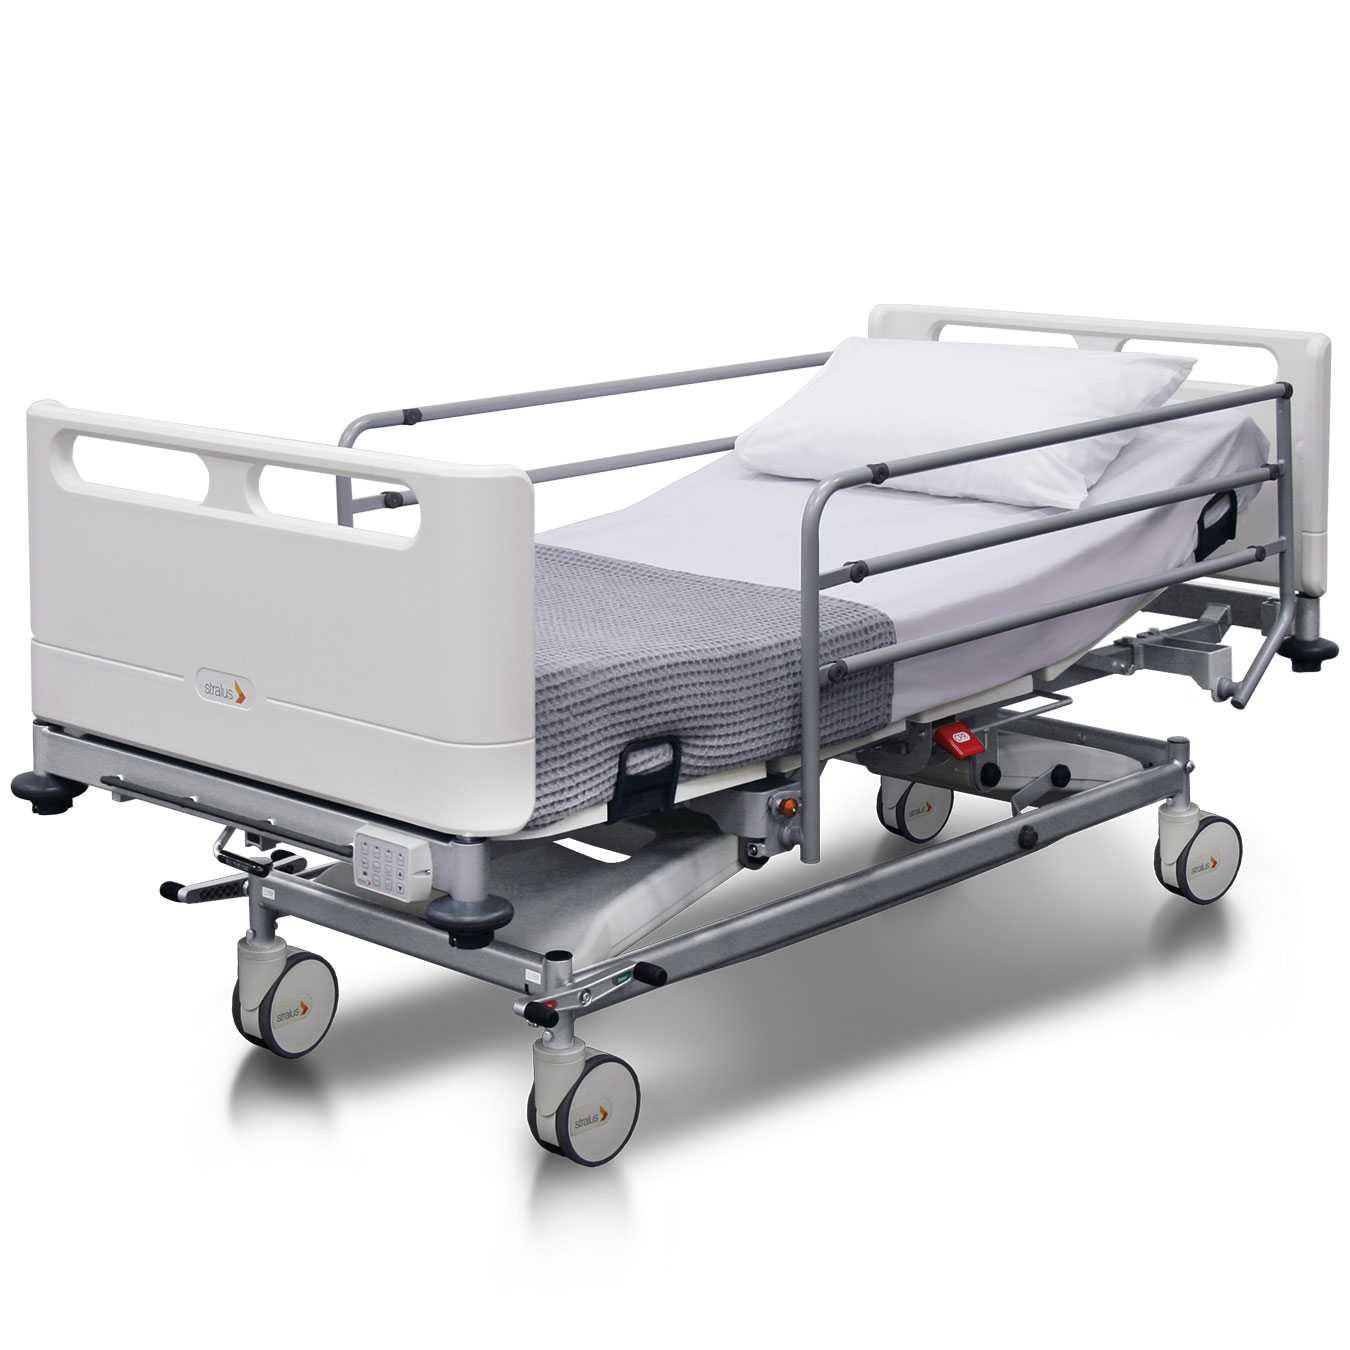 STRWARDC210-Stralus-C210-Acute-Care-Bed-Image-File-3_v1